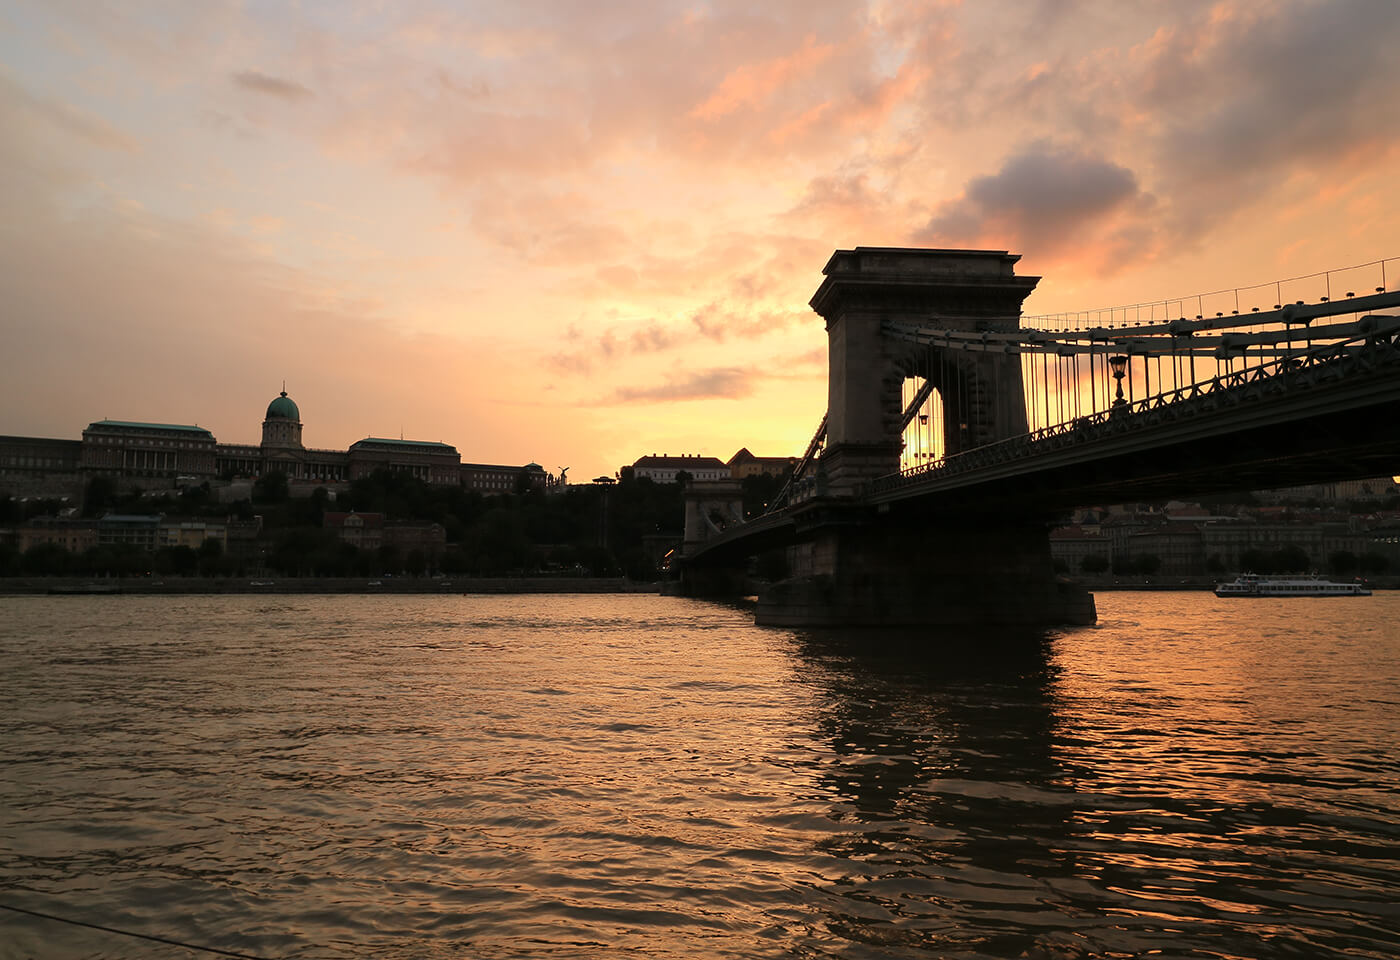 Bridge at sunset taken by Canon EOS M3 compact camera